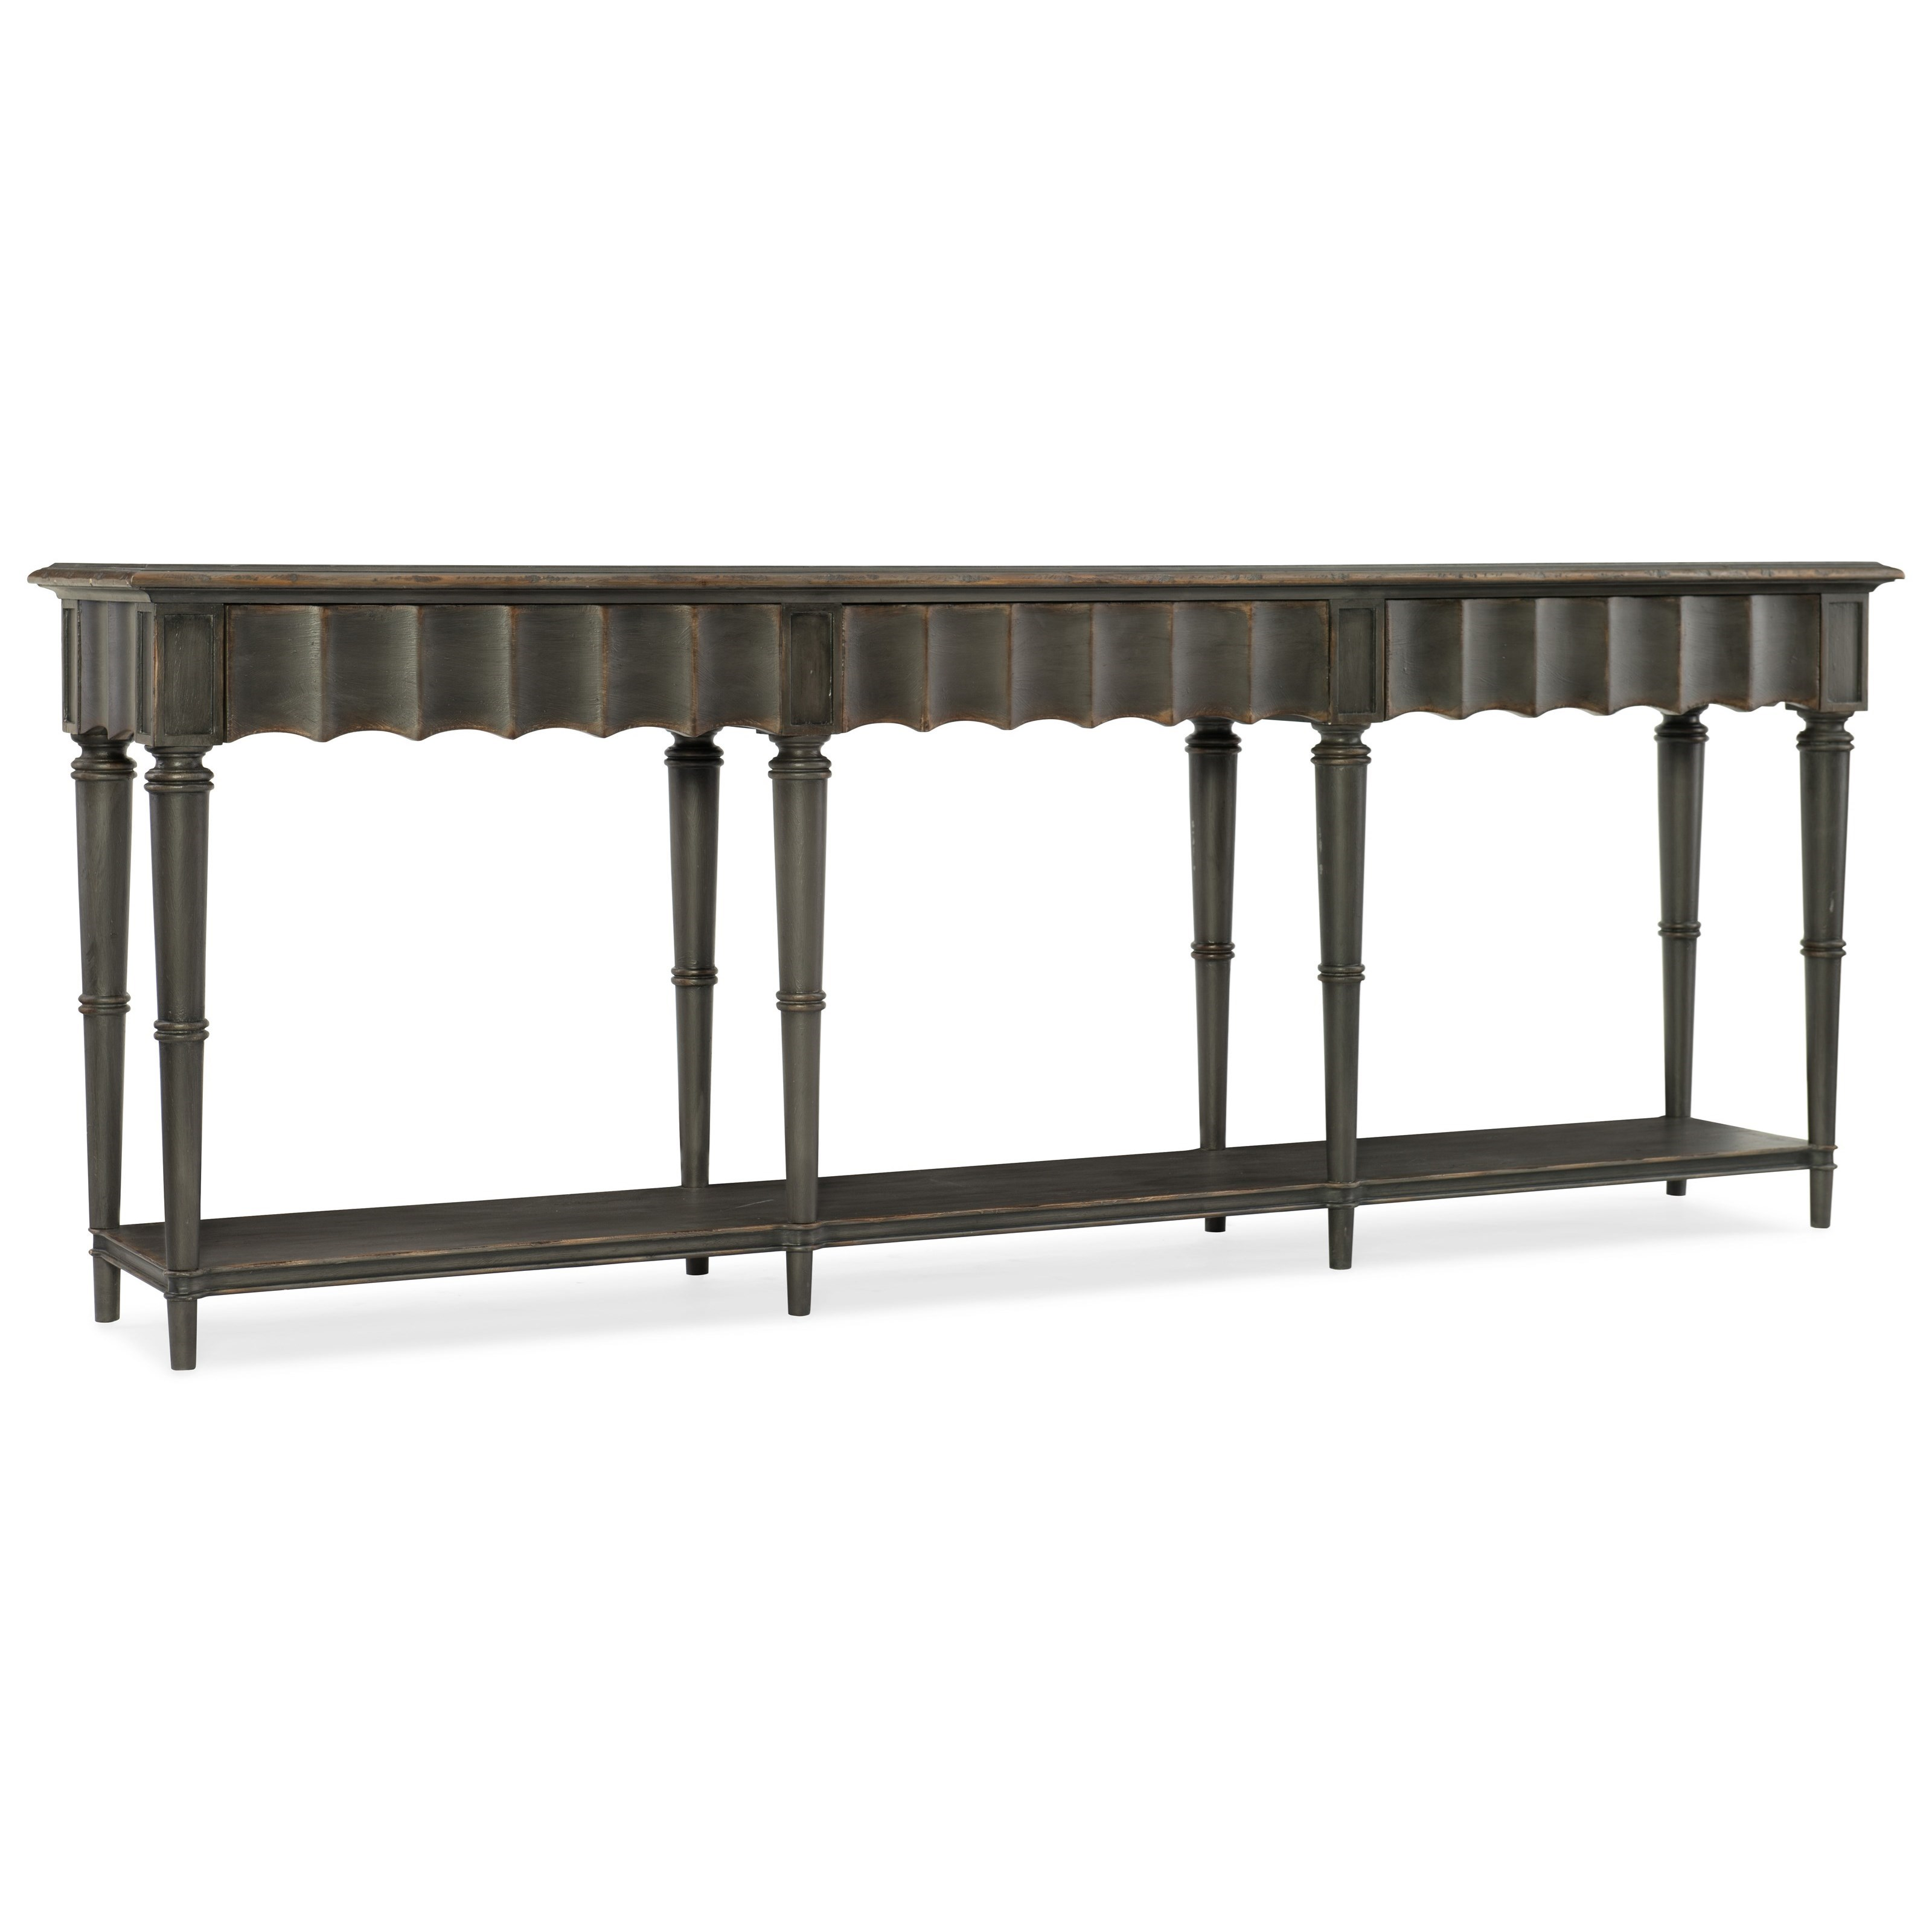 Hooker Furniture Arabella Hall Console - Item Number: 1610-85008-GRY